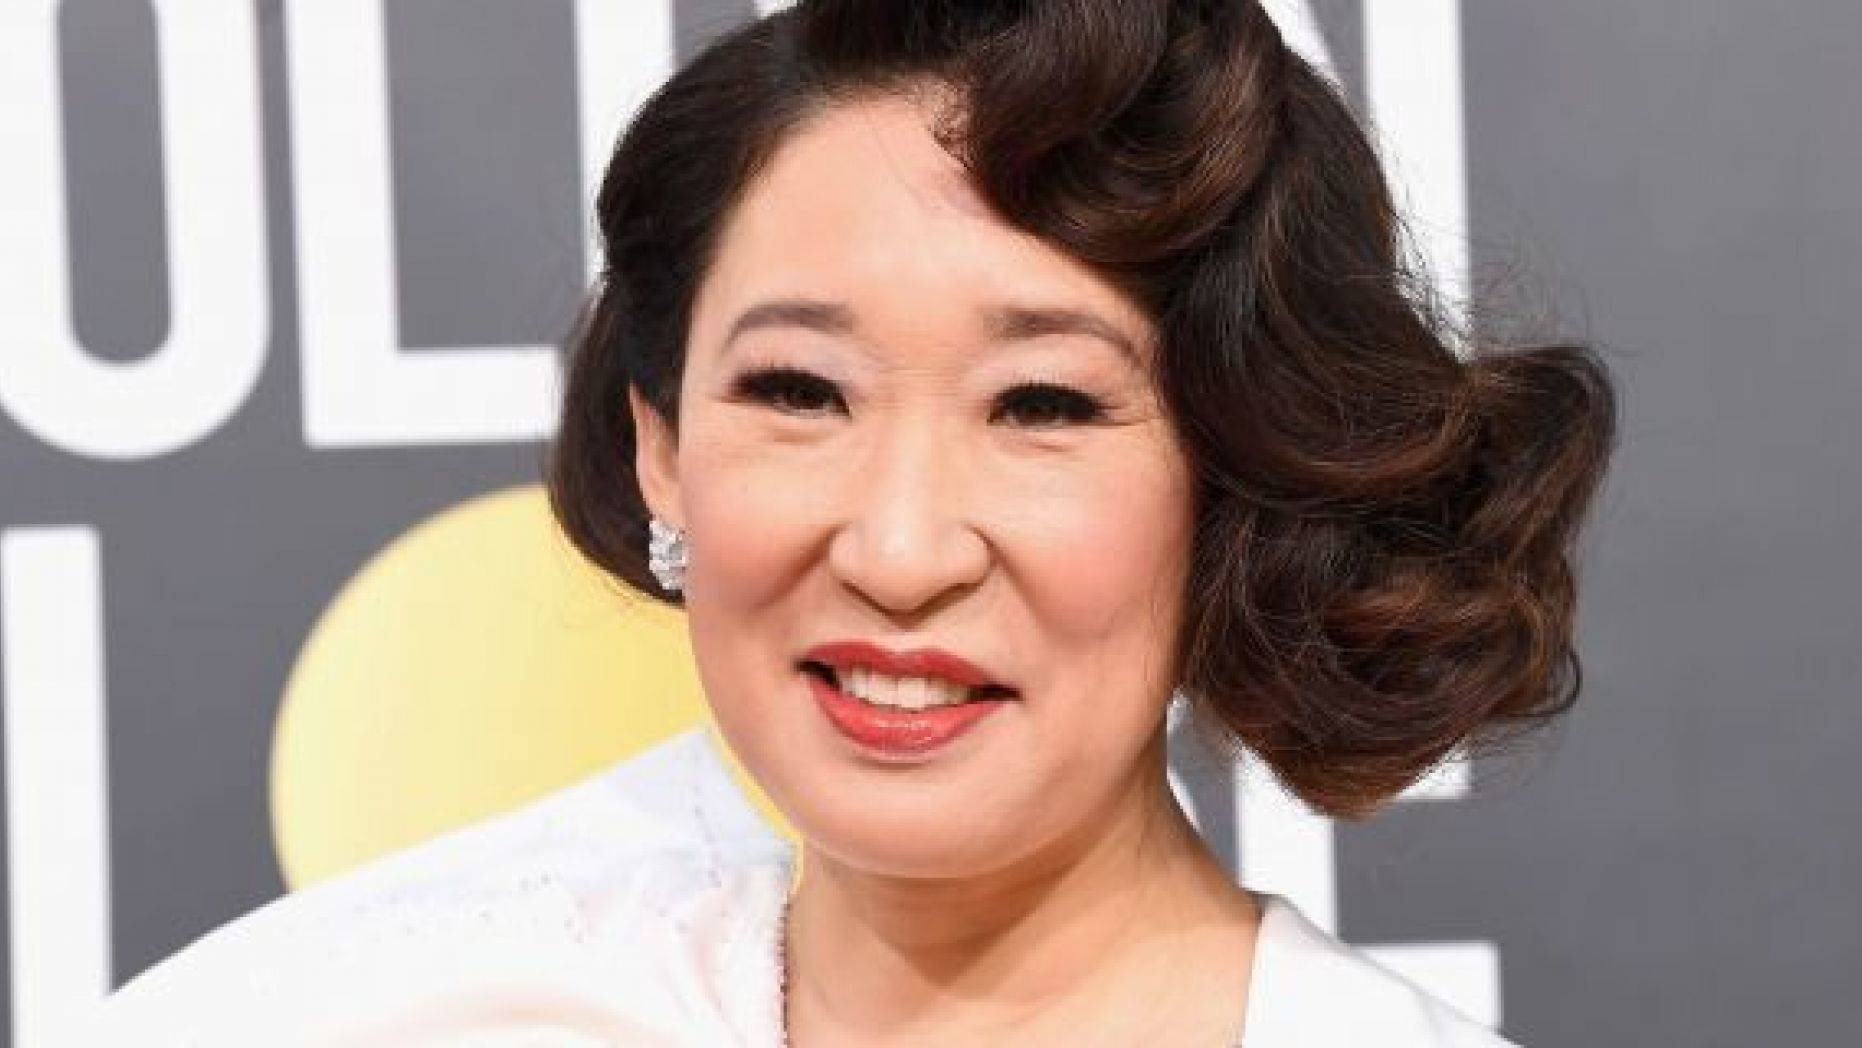 Sandra Oh attends the 76th Annual Golden Globe Awards at The Beverly Hilton Hotel on January 6, 2019 in Beverly Hills, California.